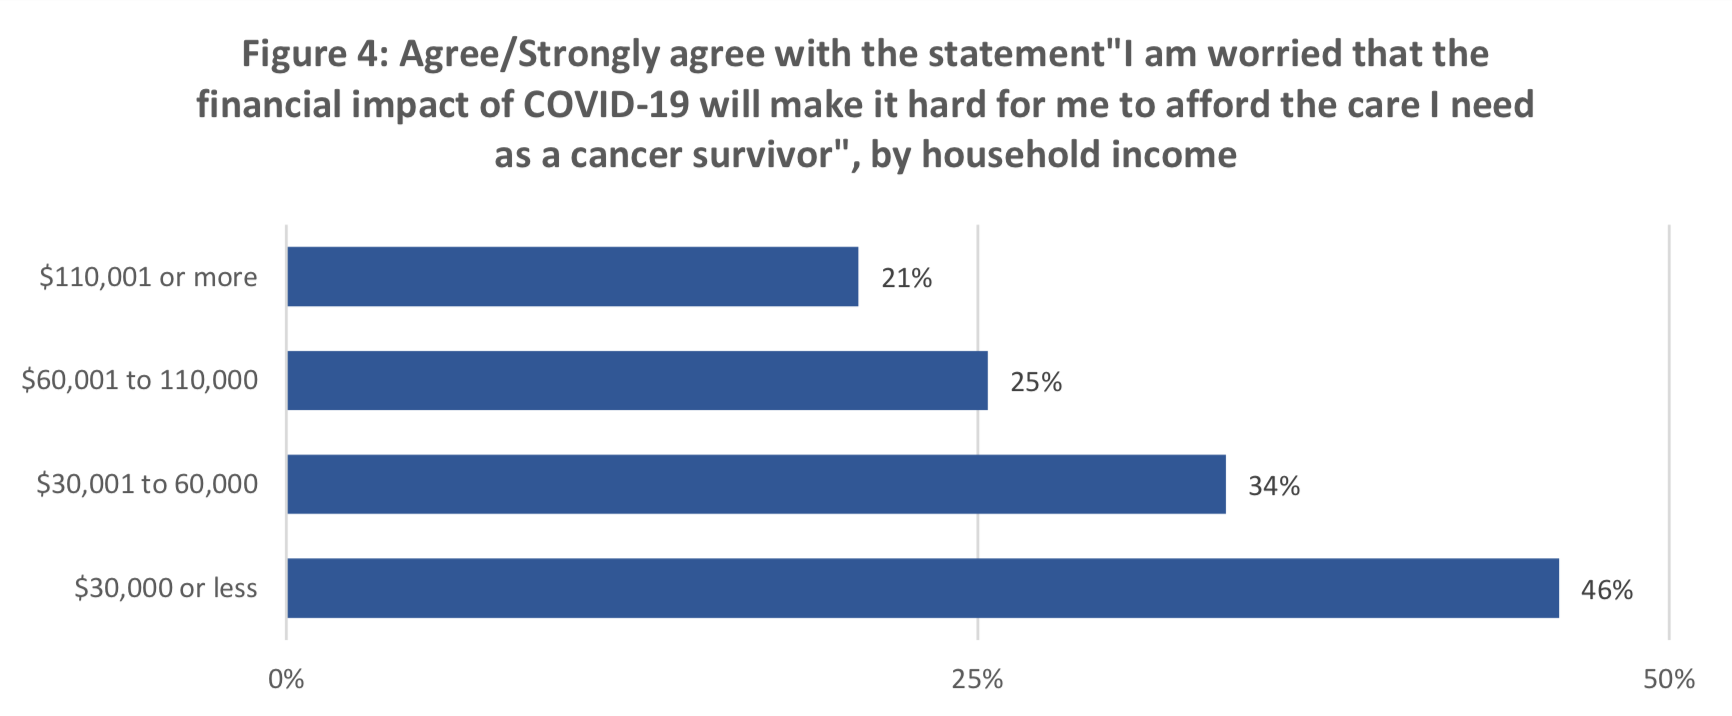 "Figure 4: Agree/Strongly agree with the statement""I am worried that the financial impact of COVID-19 will make it hard for me to afford the care I need as a cancer survivor"", by household income"